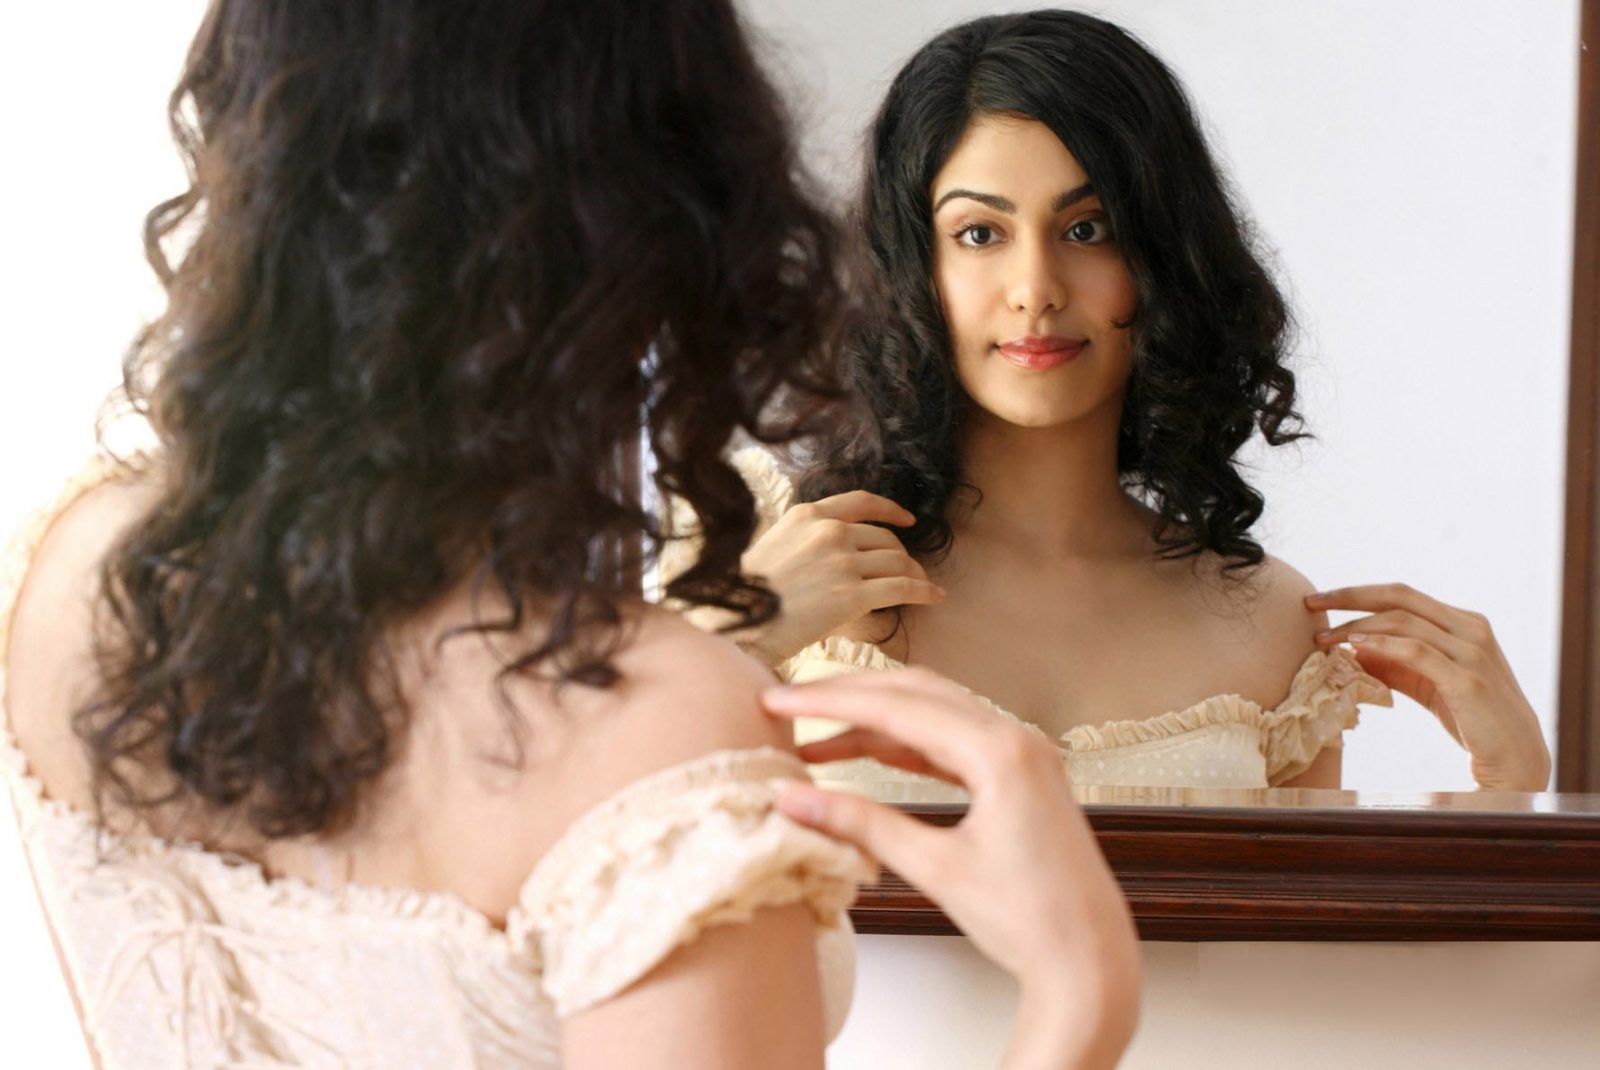 16 pictures of adah sharma that are mind-blowing |